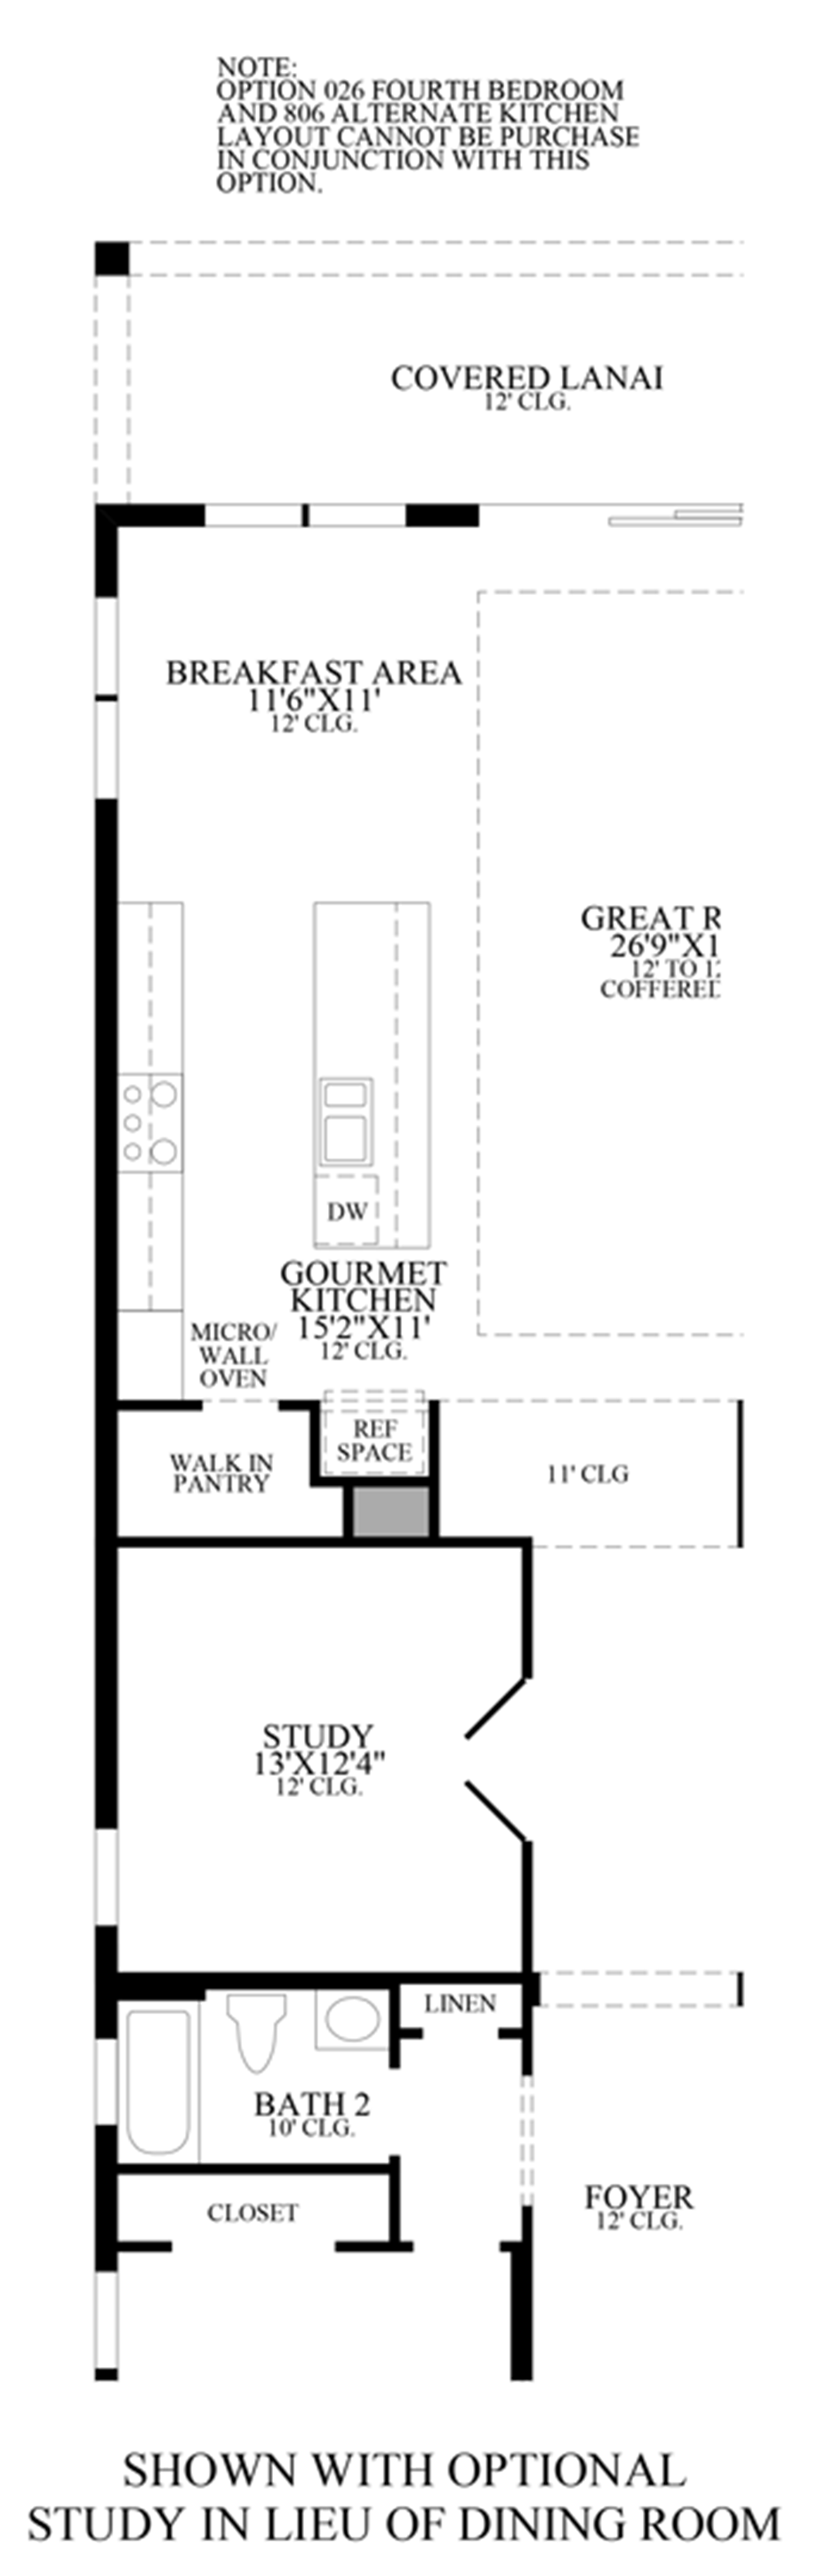 Optional Study ILO Dining Room Floor Plan